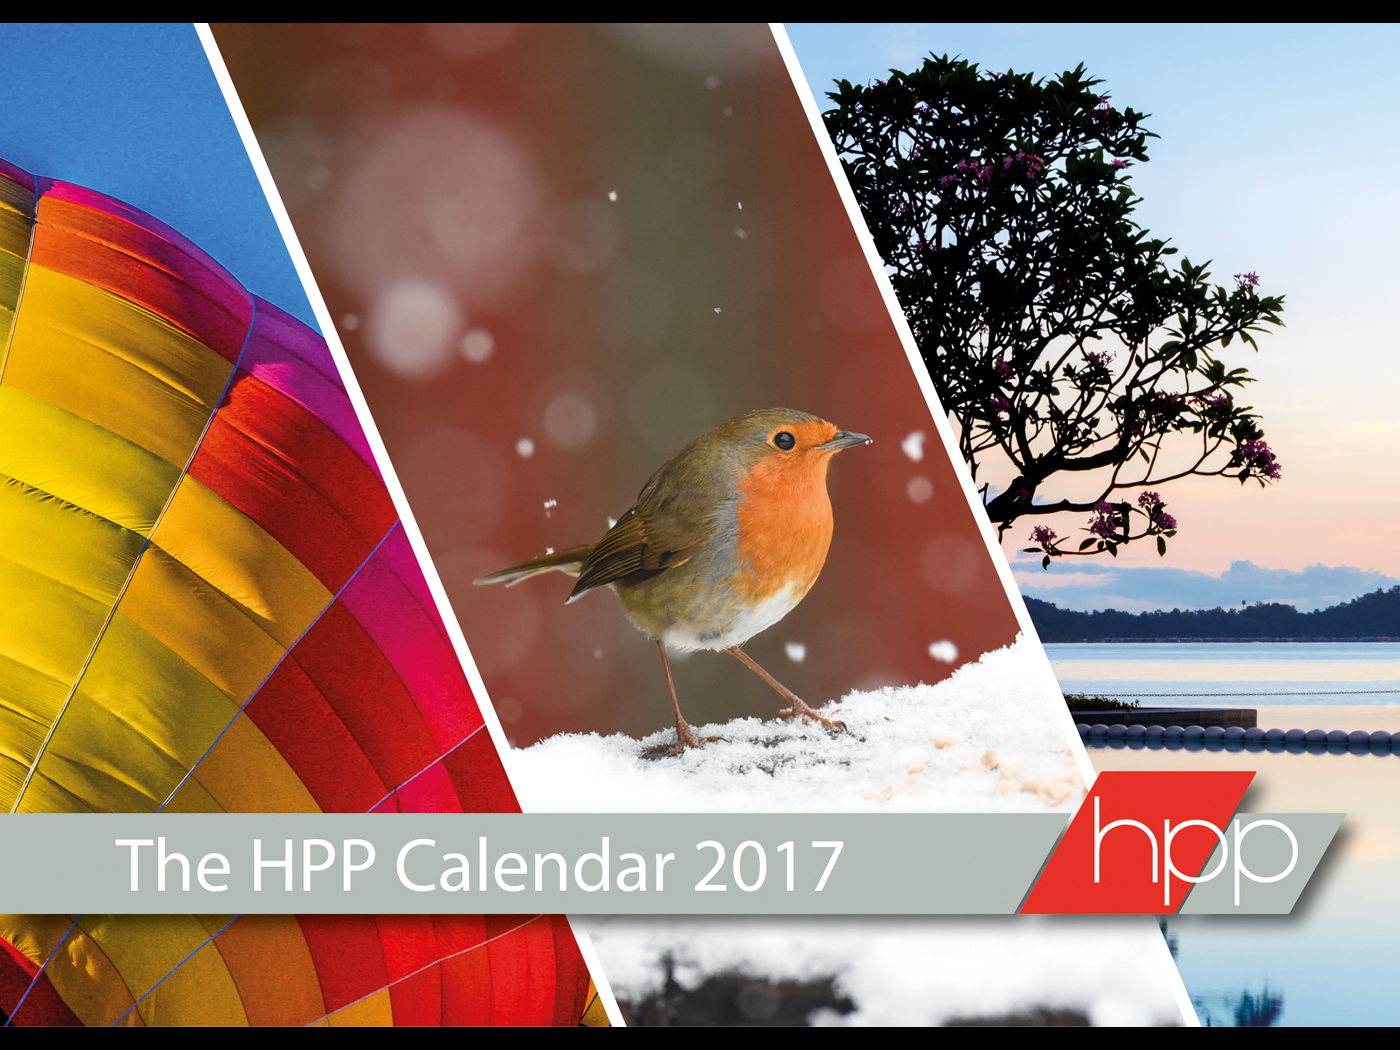 2017 HPP Calendar Competition: And the winners are...